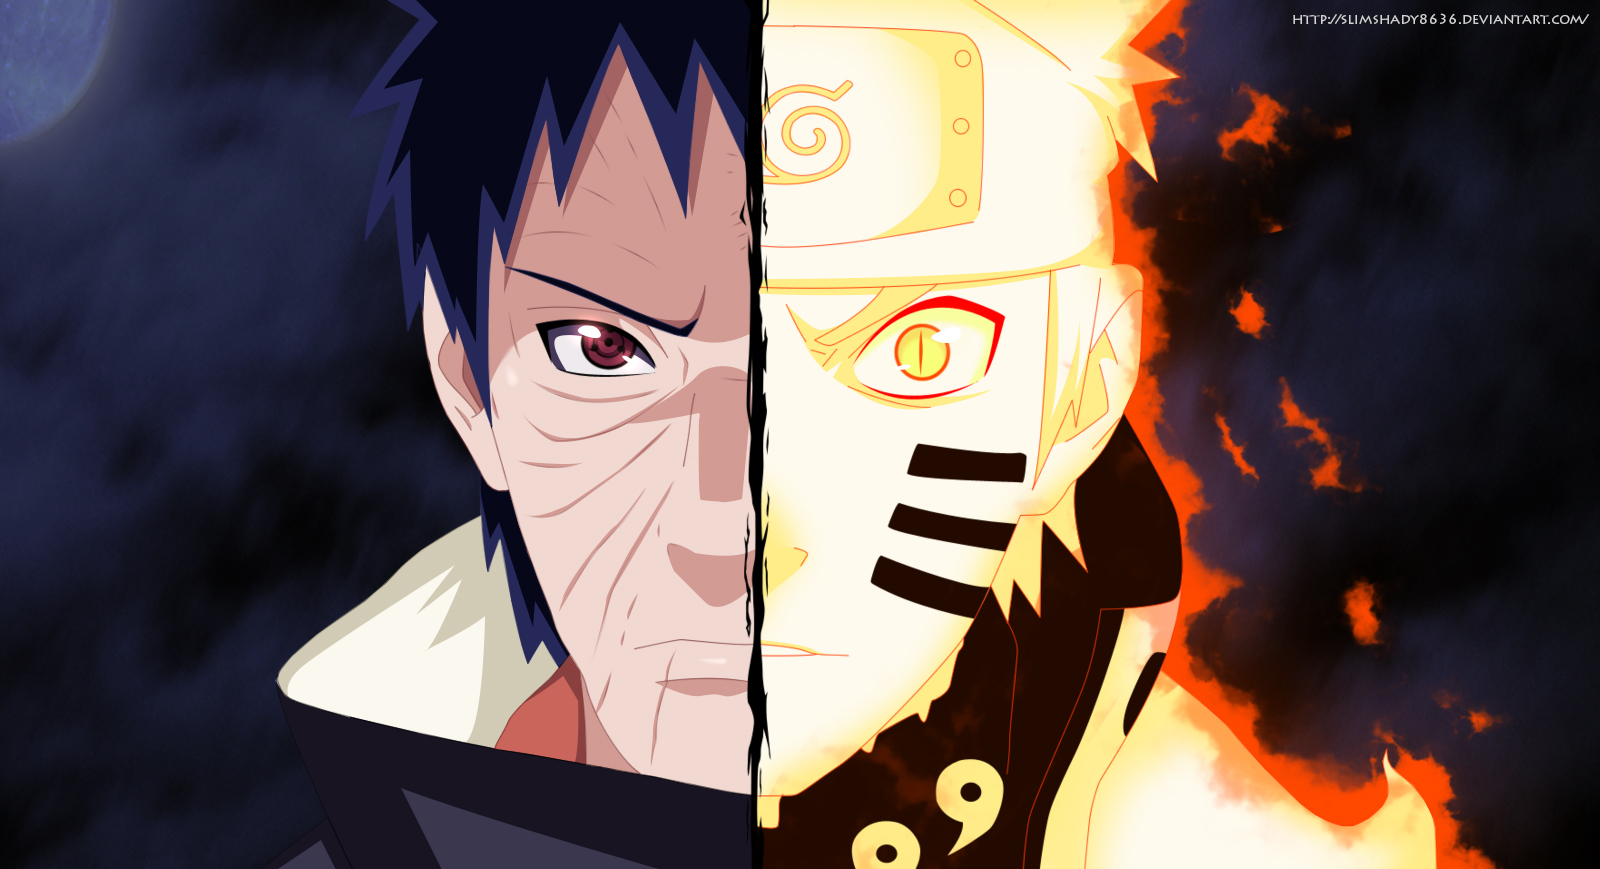 sharingan uzumaki naruto - photo #27